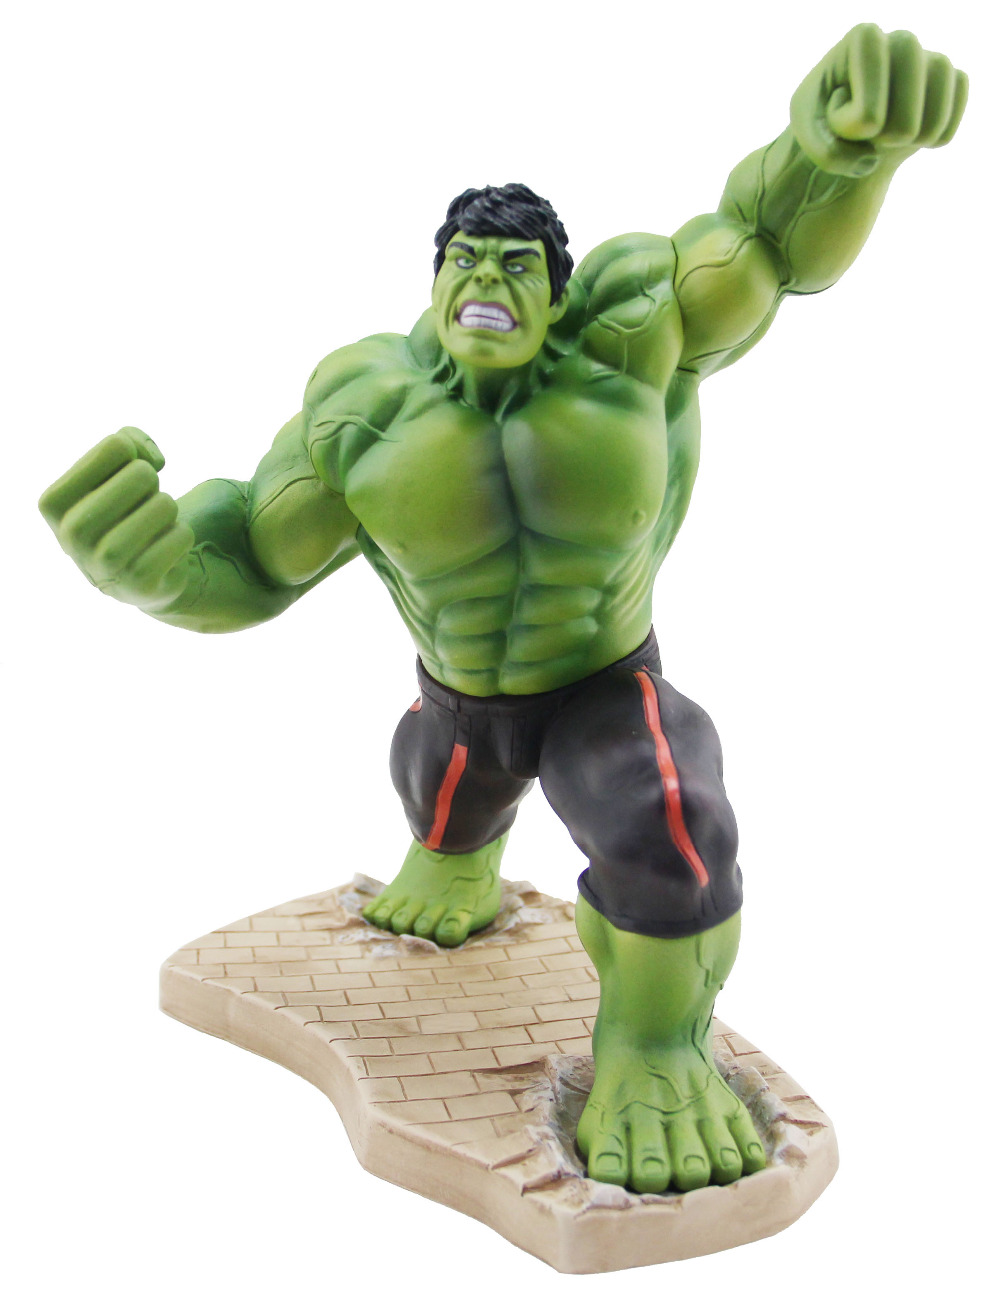 NEW hot ! 20cm avengers Super hero hulk pvc action figure toys Christmas gift doll 2017 new avengers super hero iron man hulk toys with led light pvc action figure model toys kids halloween gift